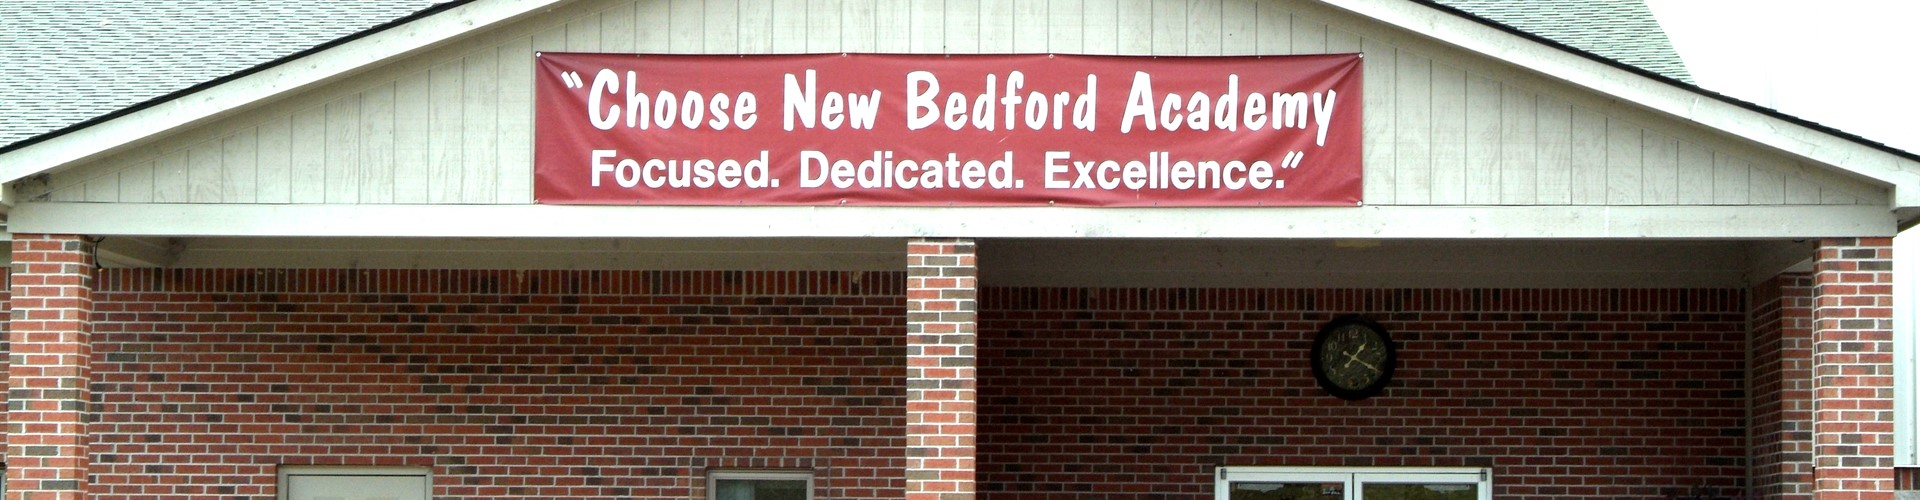 Home - New Bedford Academy